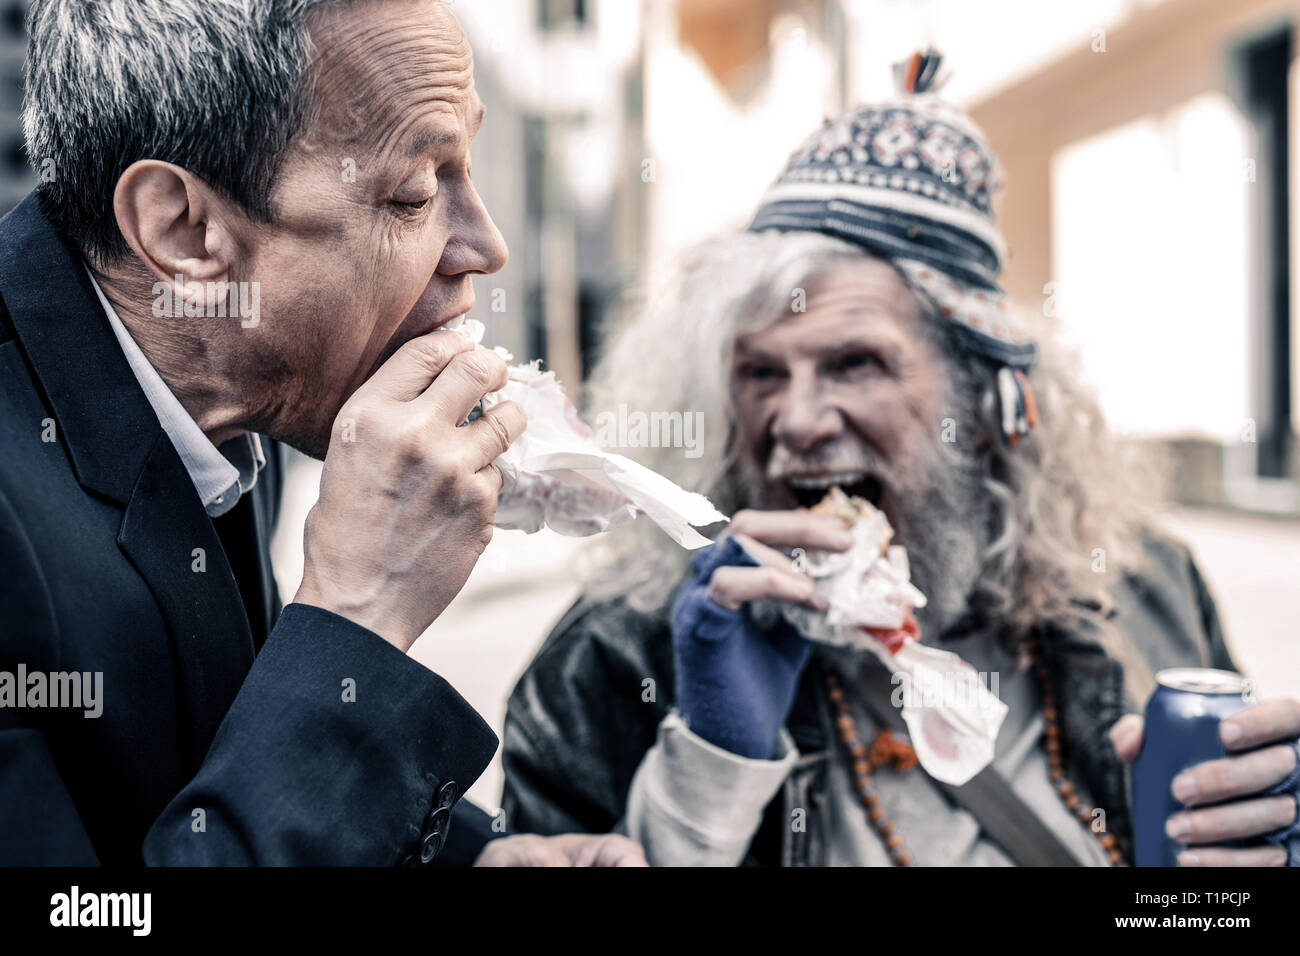 Caring short-haired business man and poor old man biting pieces of sandwich - Stock Image